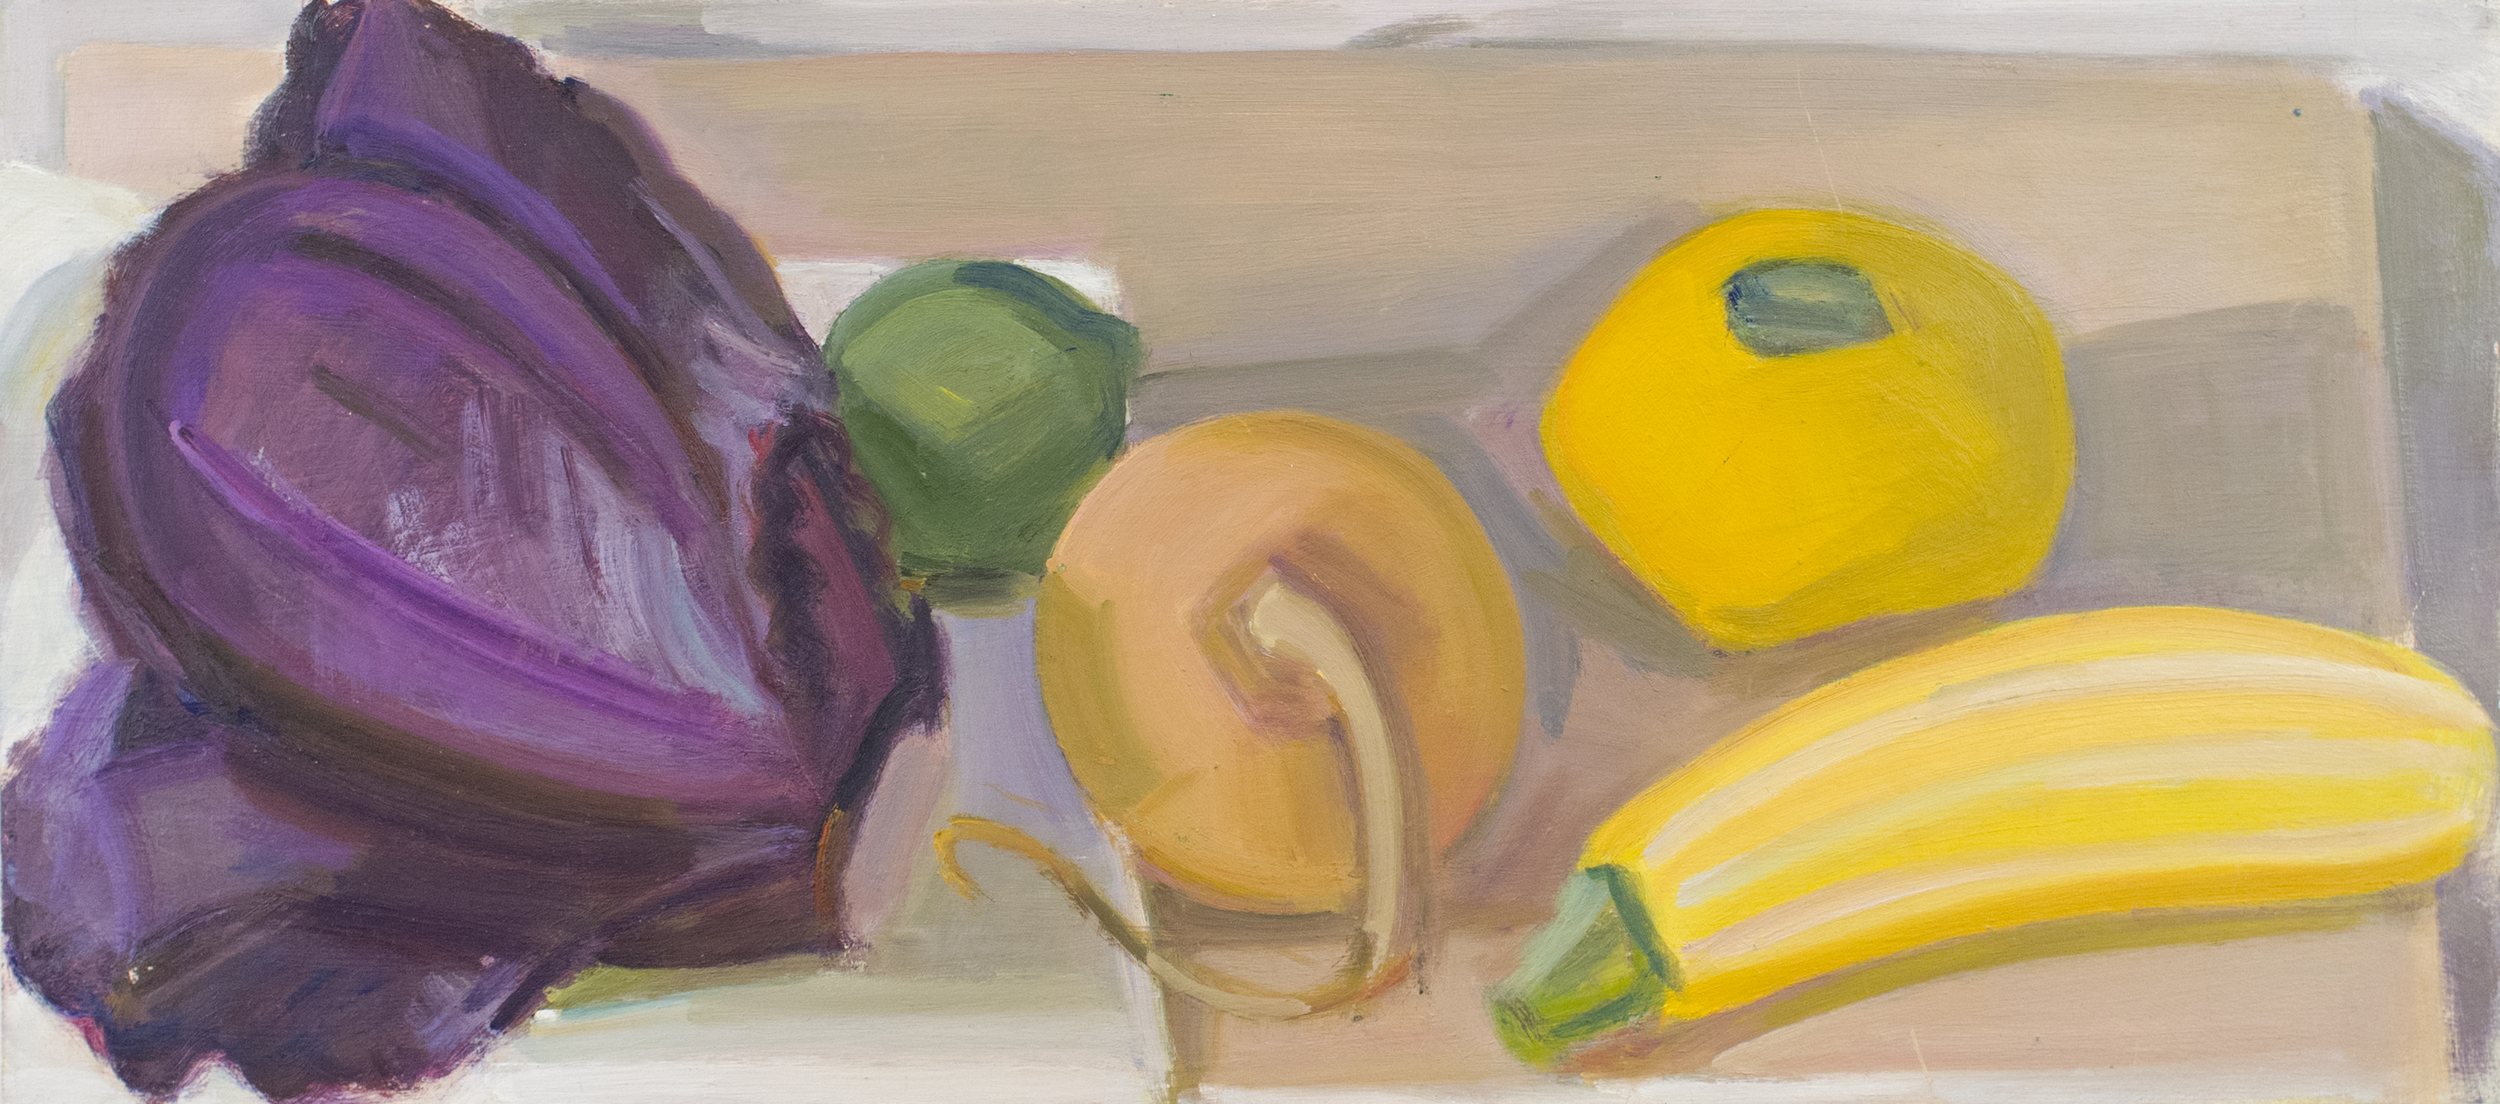 """Red Cabbage w/Lime and Pattypan and Striped Squash surrounding Onion, oil on panel, 10""""x16"""""""